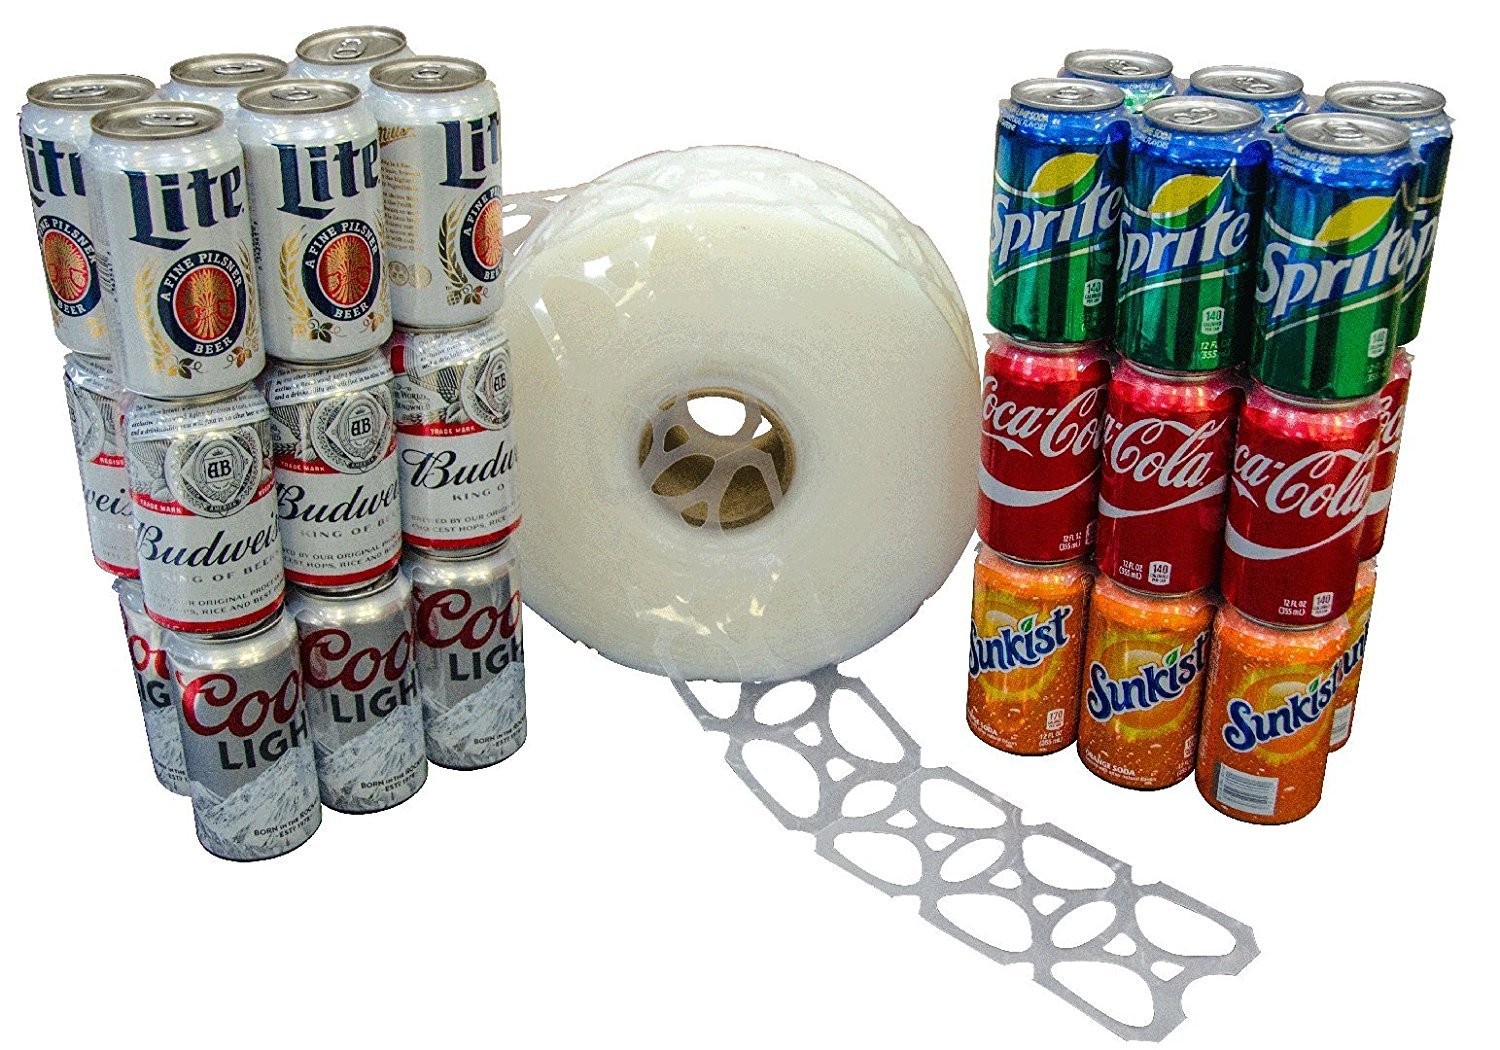 1000 Count Roll 6-Pack Rings Universal Fit - Fits all 12oz Beer Soda Cans C-STORE PACKAGING COMINHKPR102643